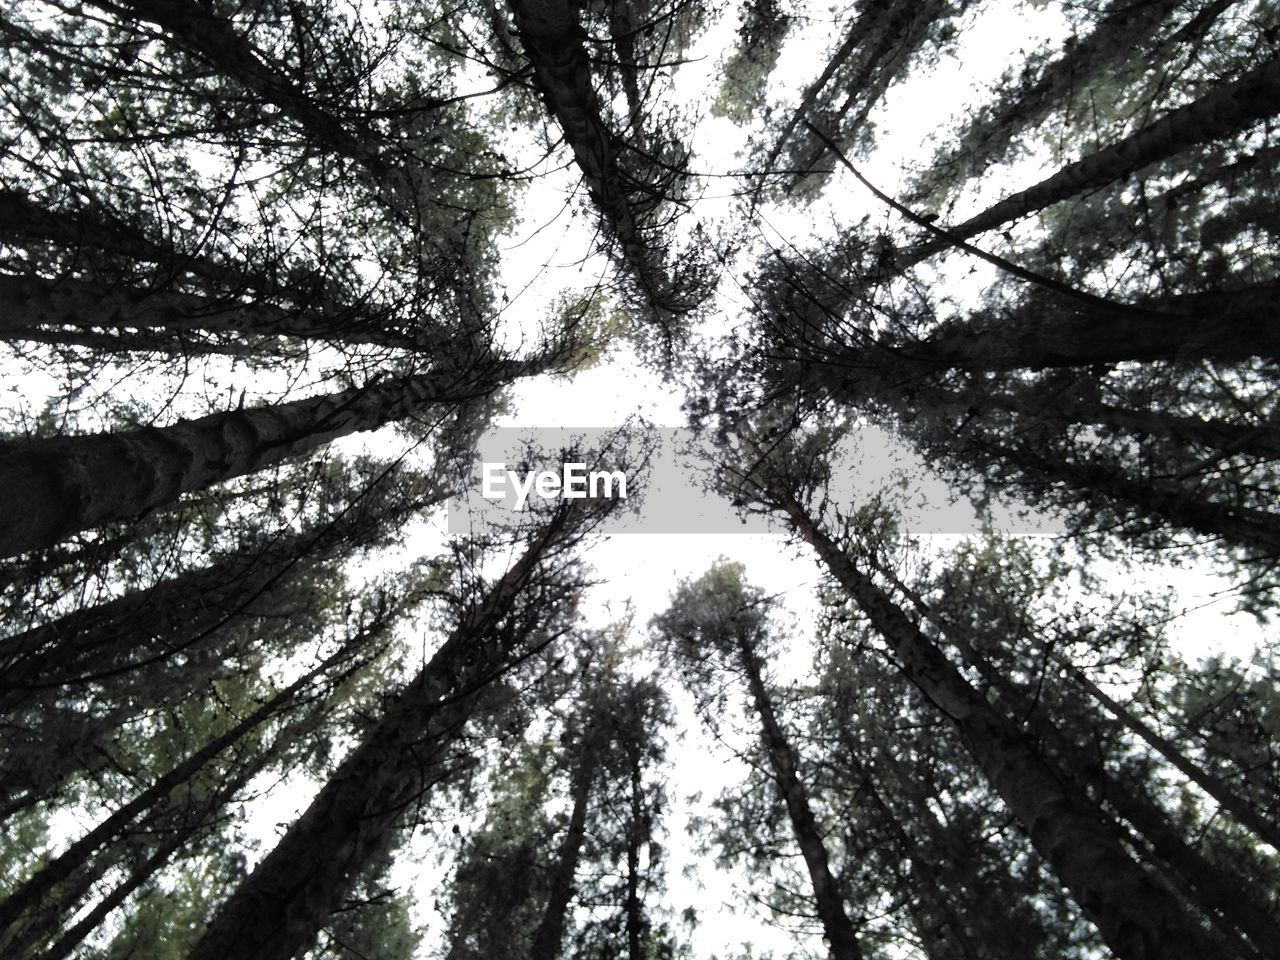 tree, low angle view, tree trunk, nature, growth, forest, tree canopy, branch, directly below, day, tranquility, no people, beauty in nature, outdoors, woodland, backgrounds, tranquil scene, scenics, sky